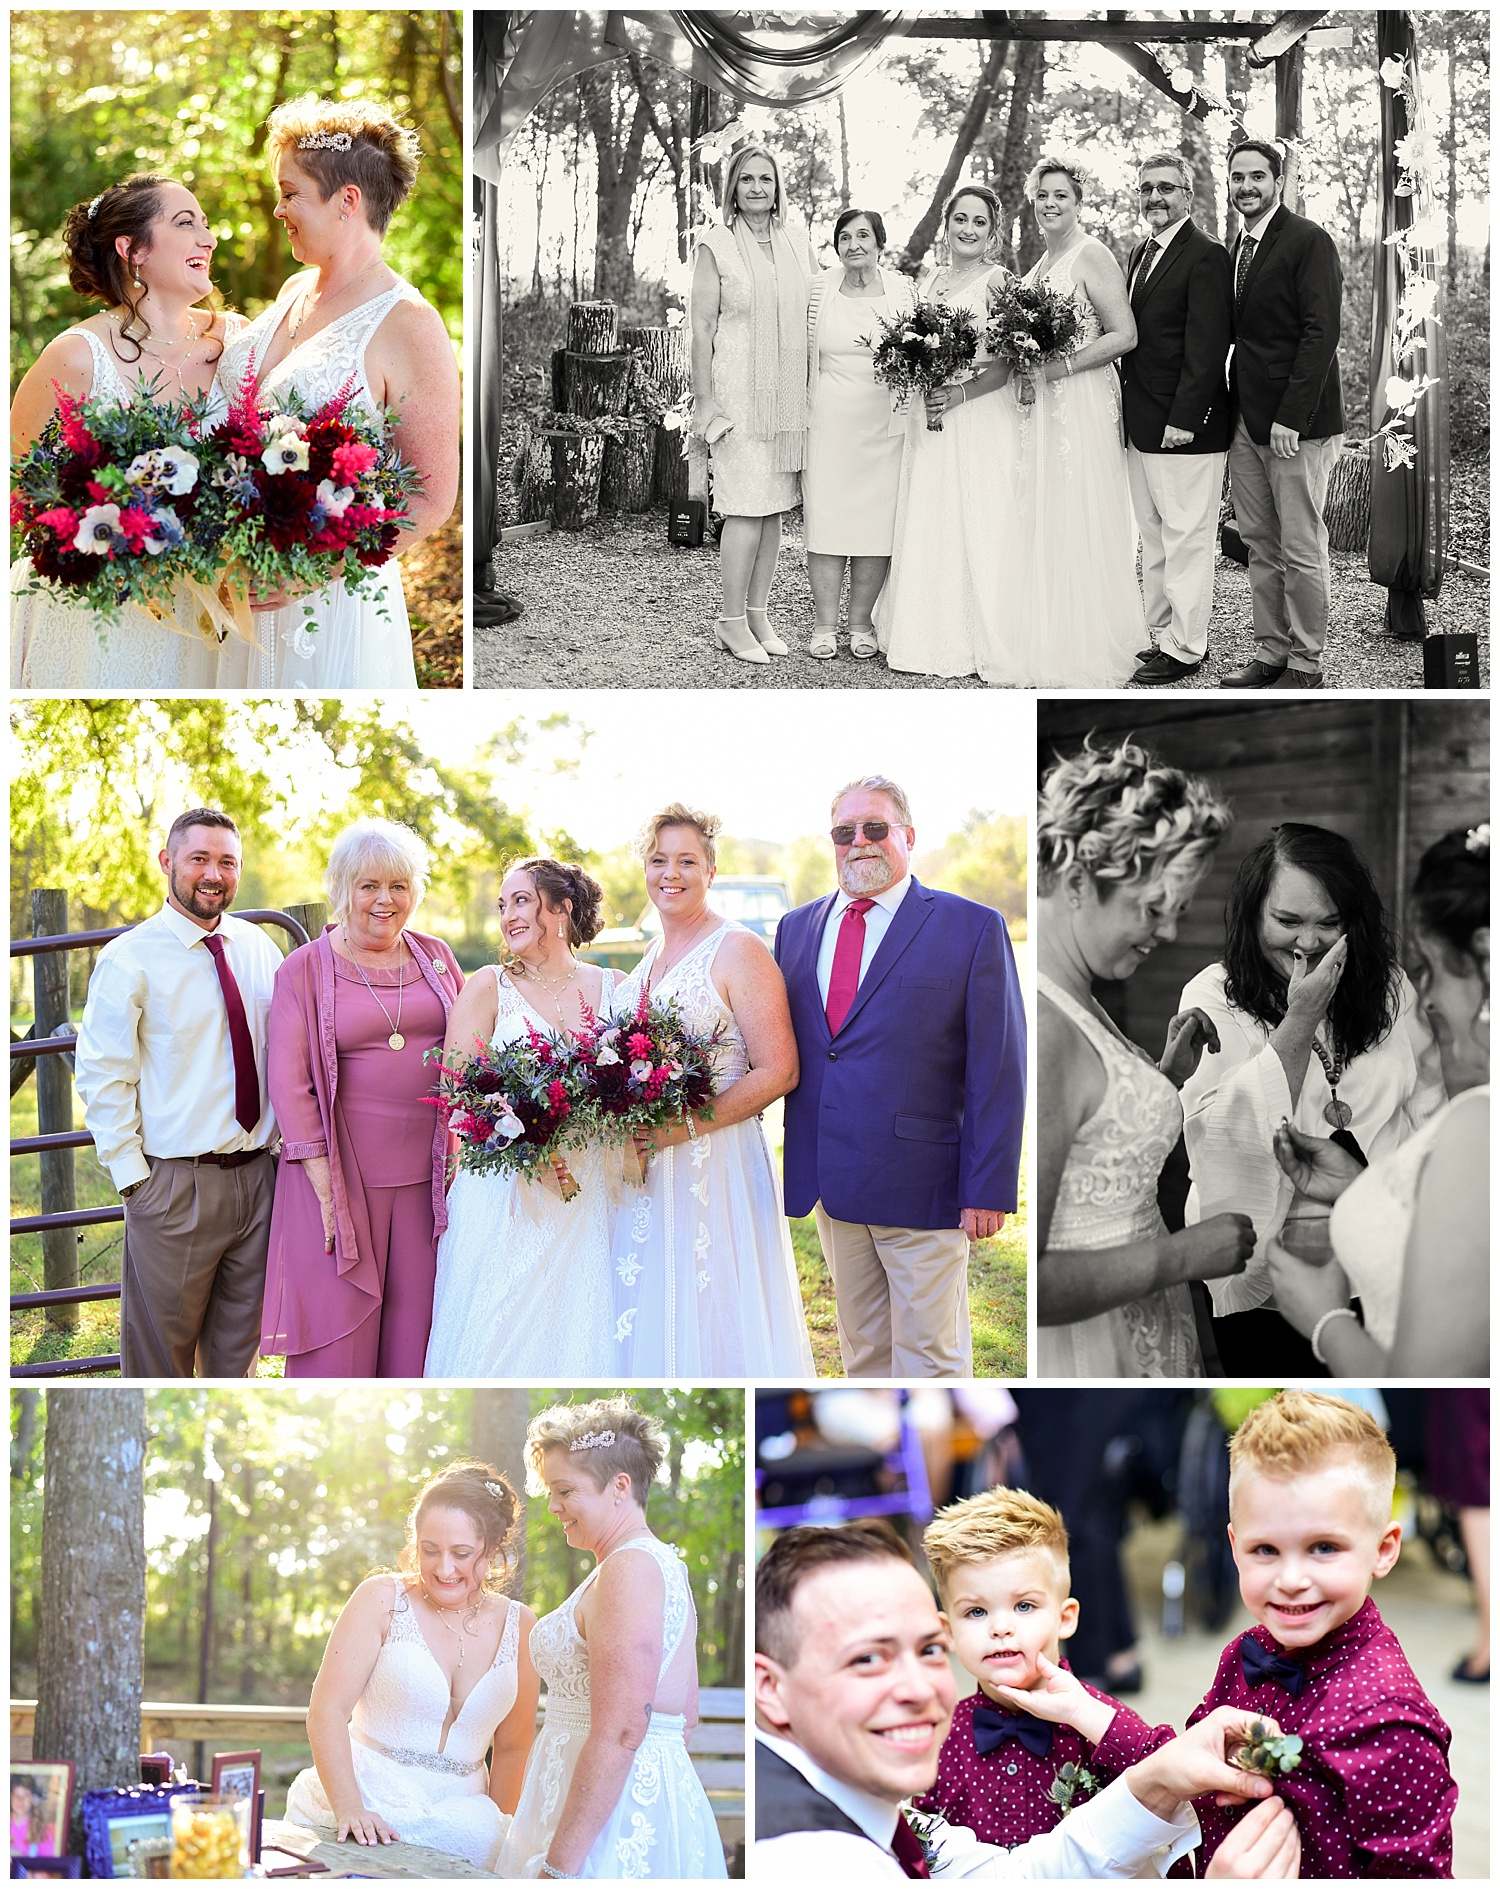 LGBTQ wedding in North Carolina